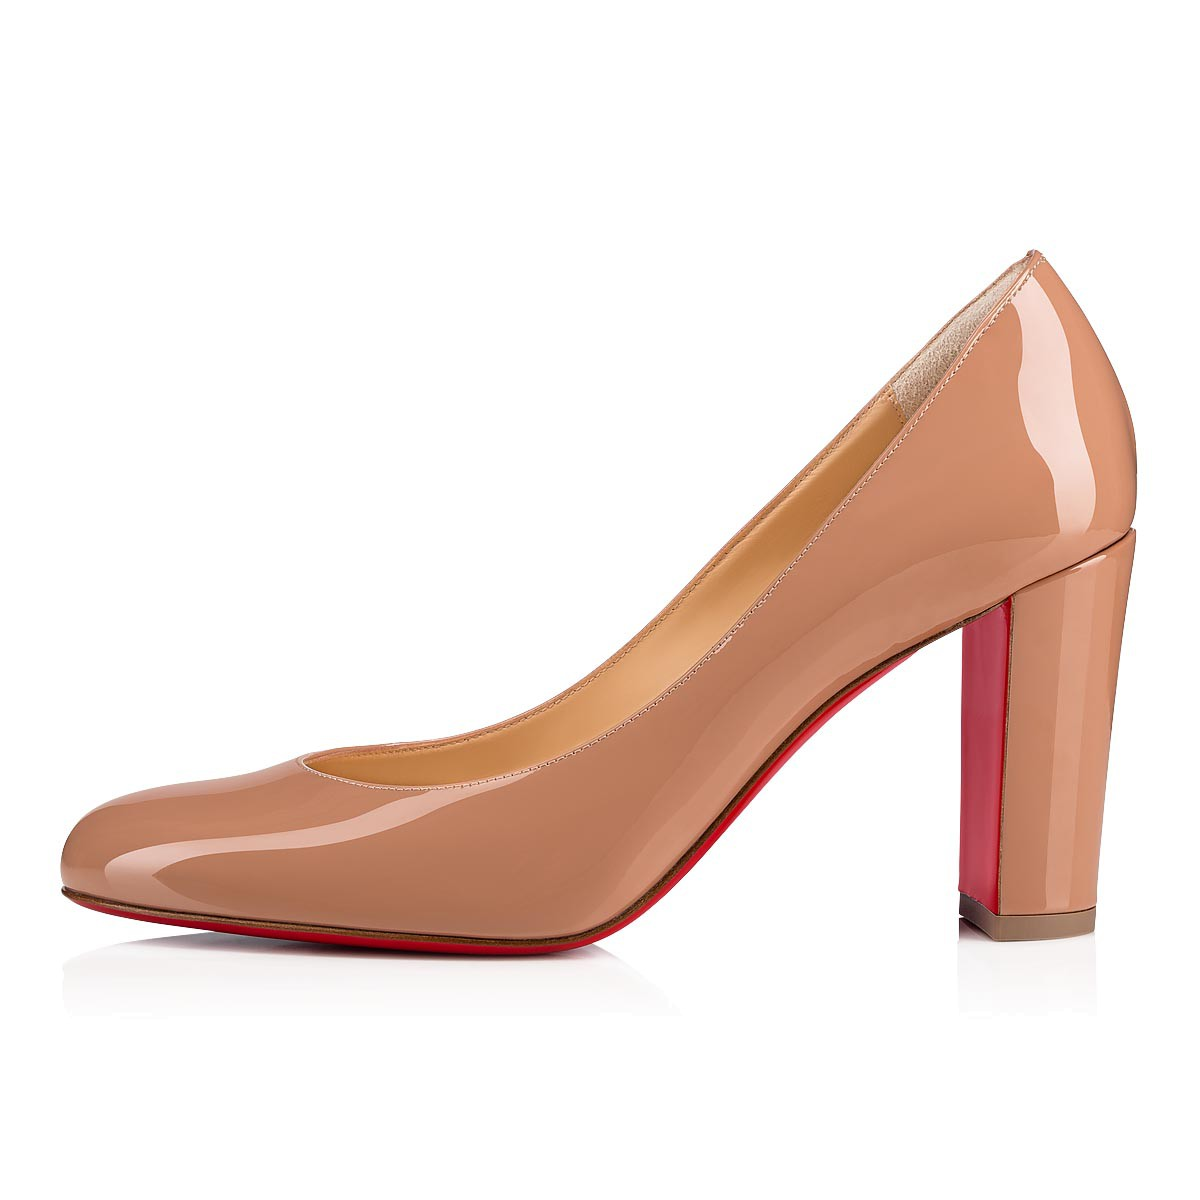 Shoes - Lady Gena - Christian Louboutin